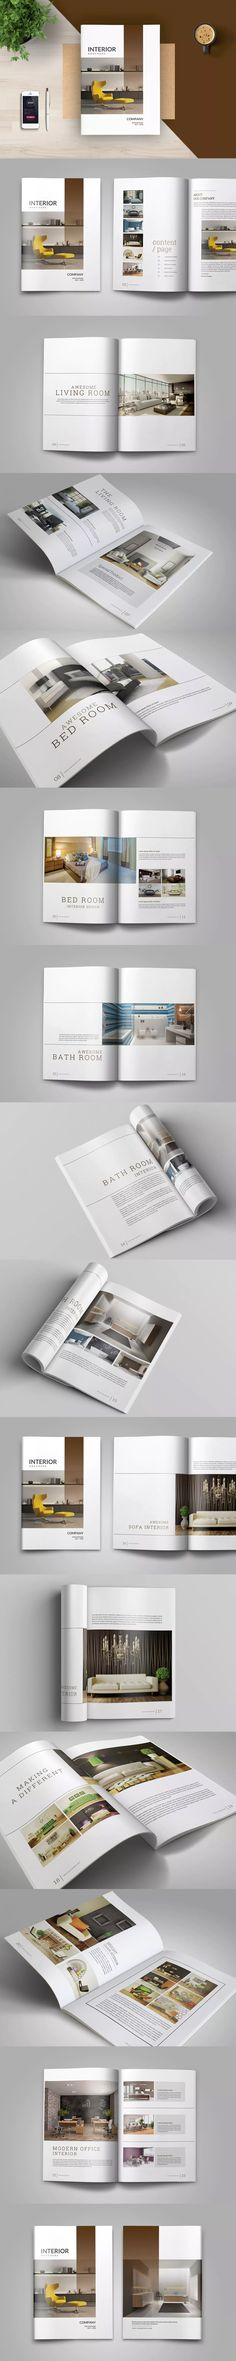 Interior Catalogs Brochure MagazineTemplate PSD, PDF - A4